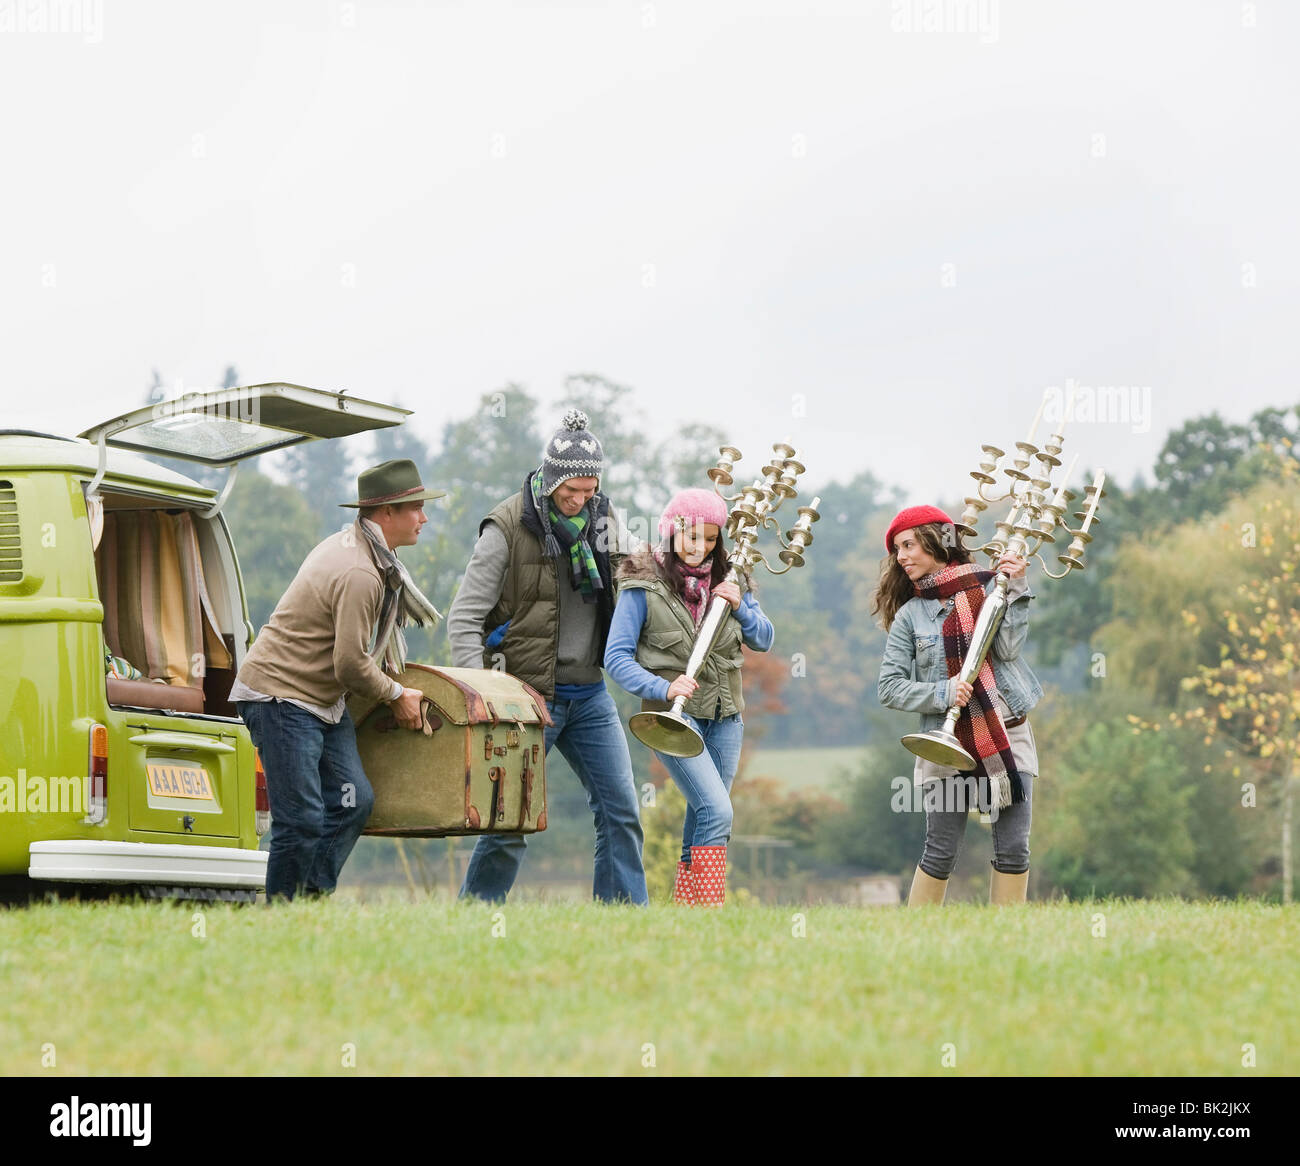 People unloading things from camping van - Stock Image